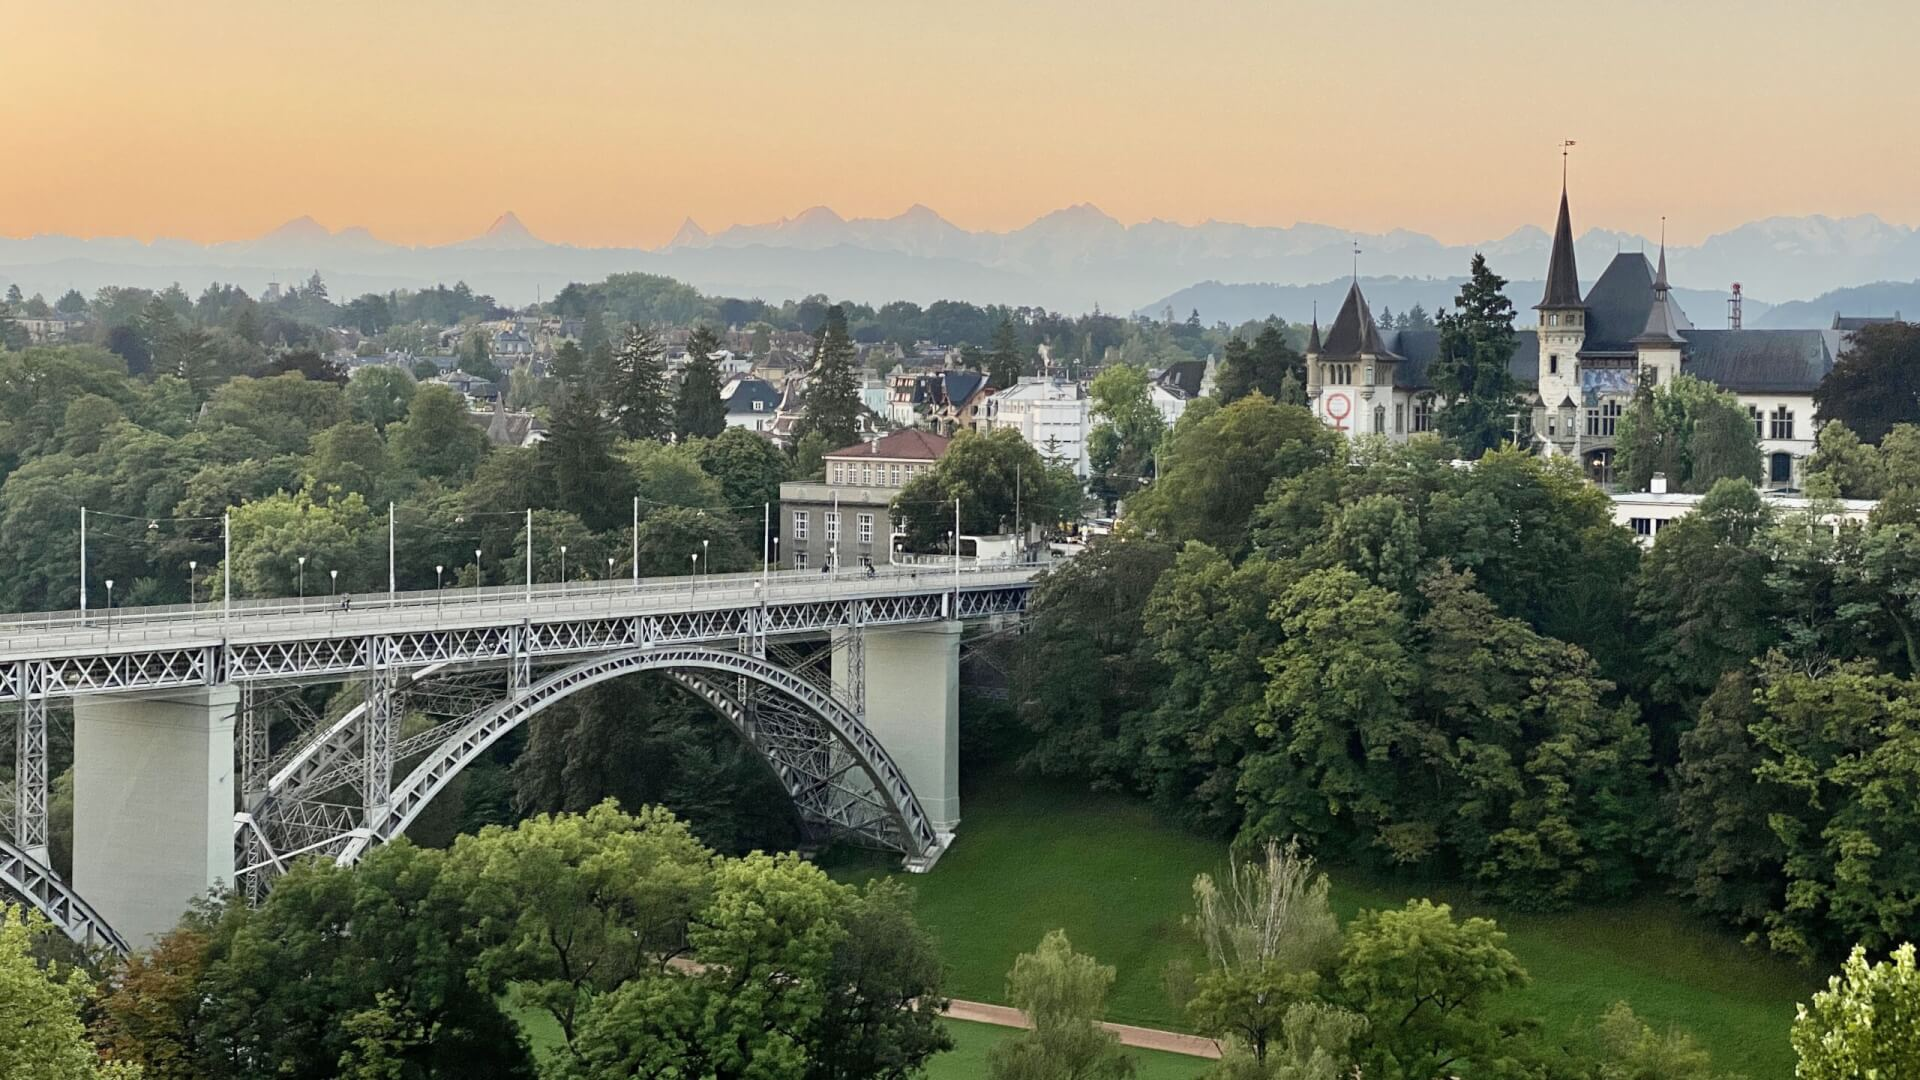 Top Ten Things To Do in Bern including the Bellevue Palace